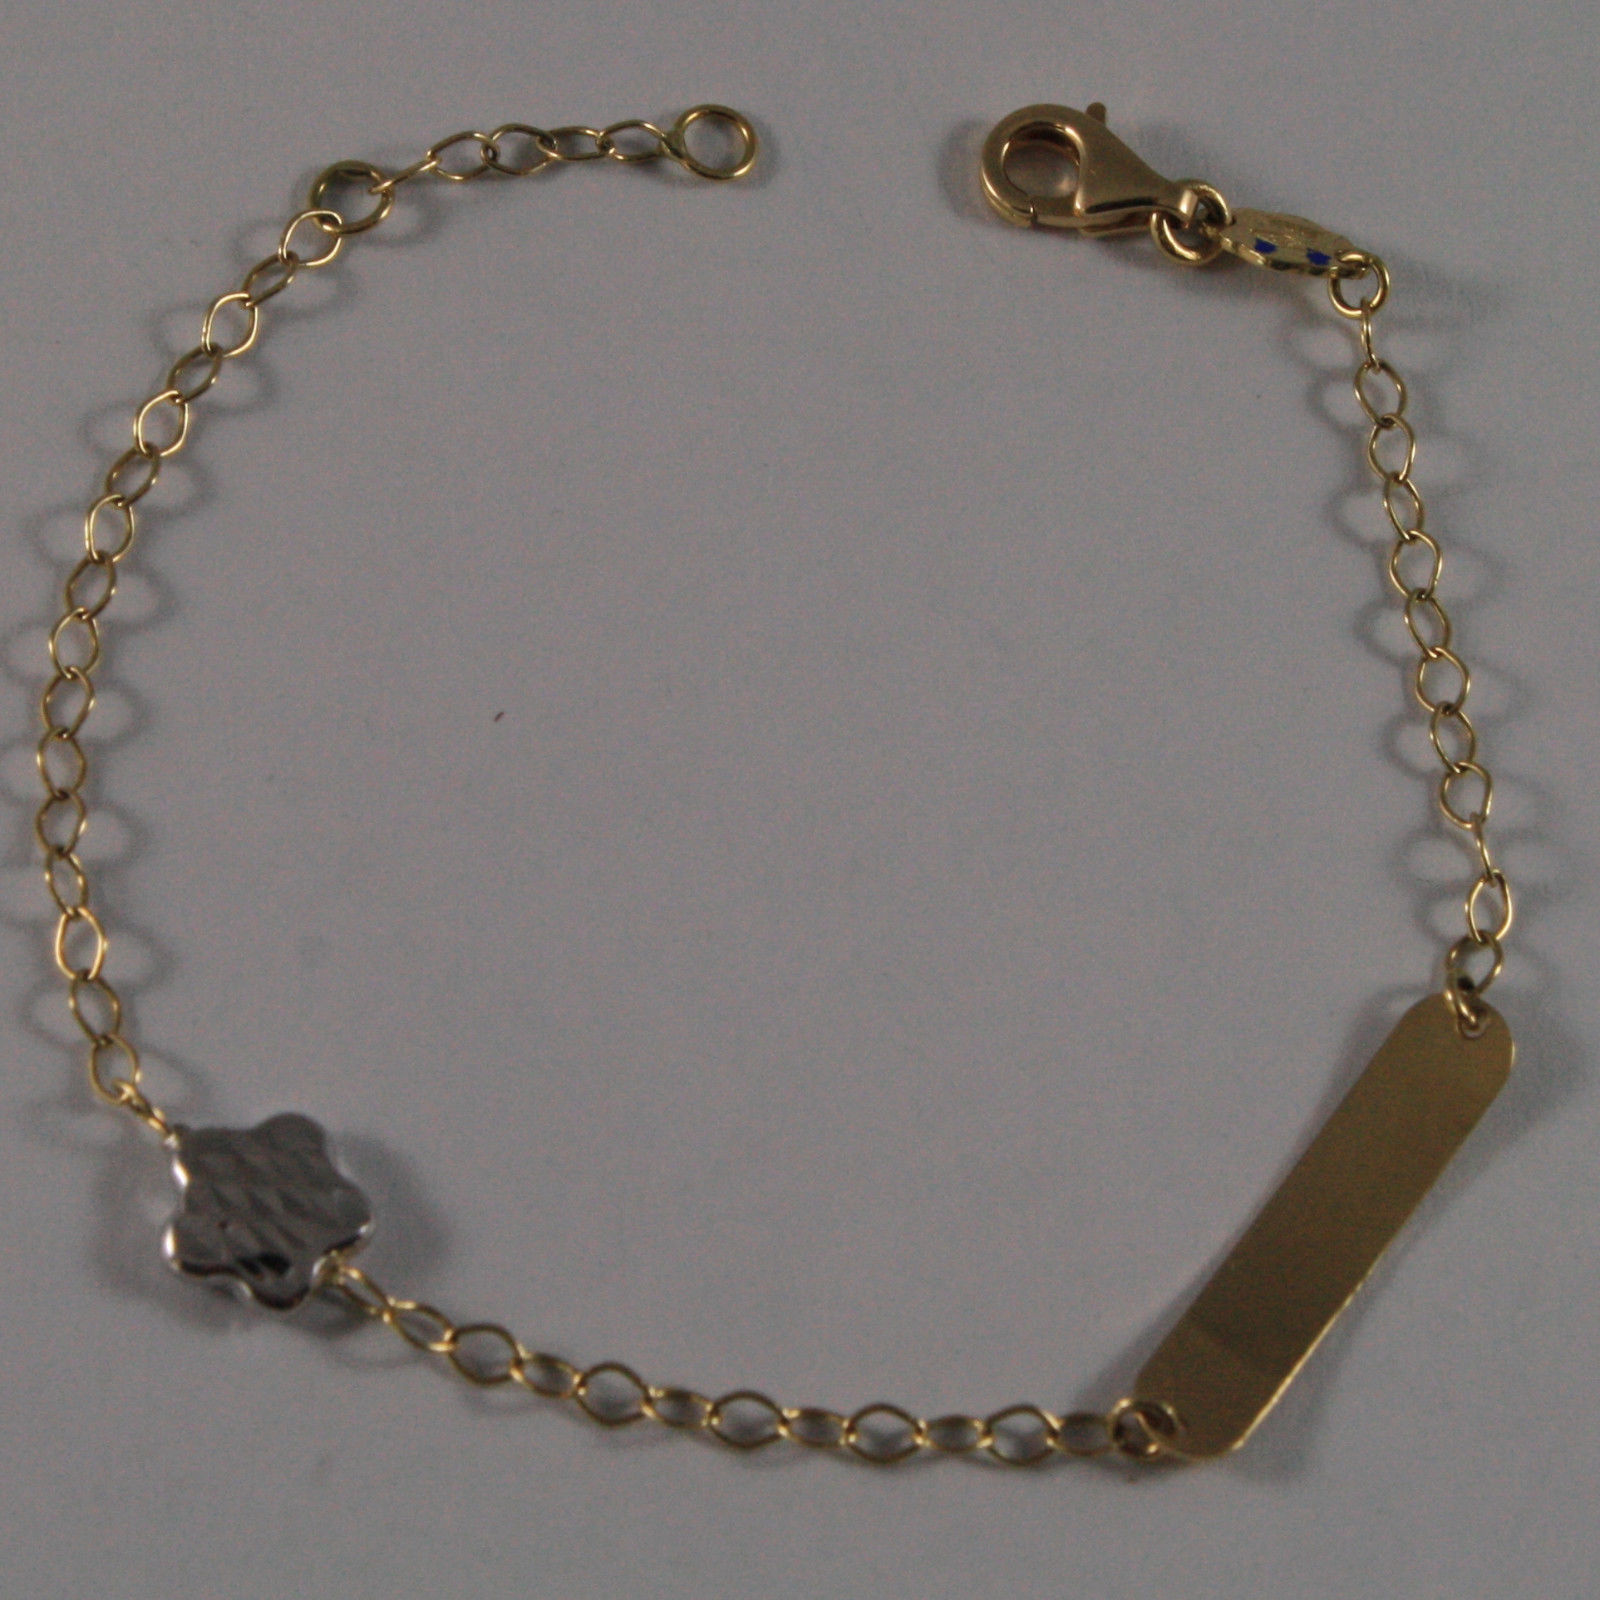 SOLID 18K YELLOW GOLD BRACELET 6.1 INCHES, ENGRAVING PLATE, WHITE STAR FOR CHILD